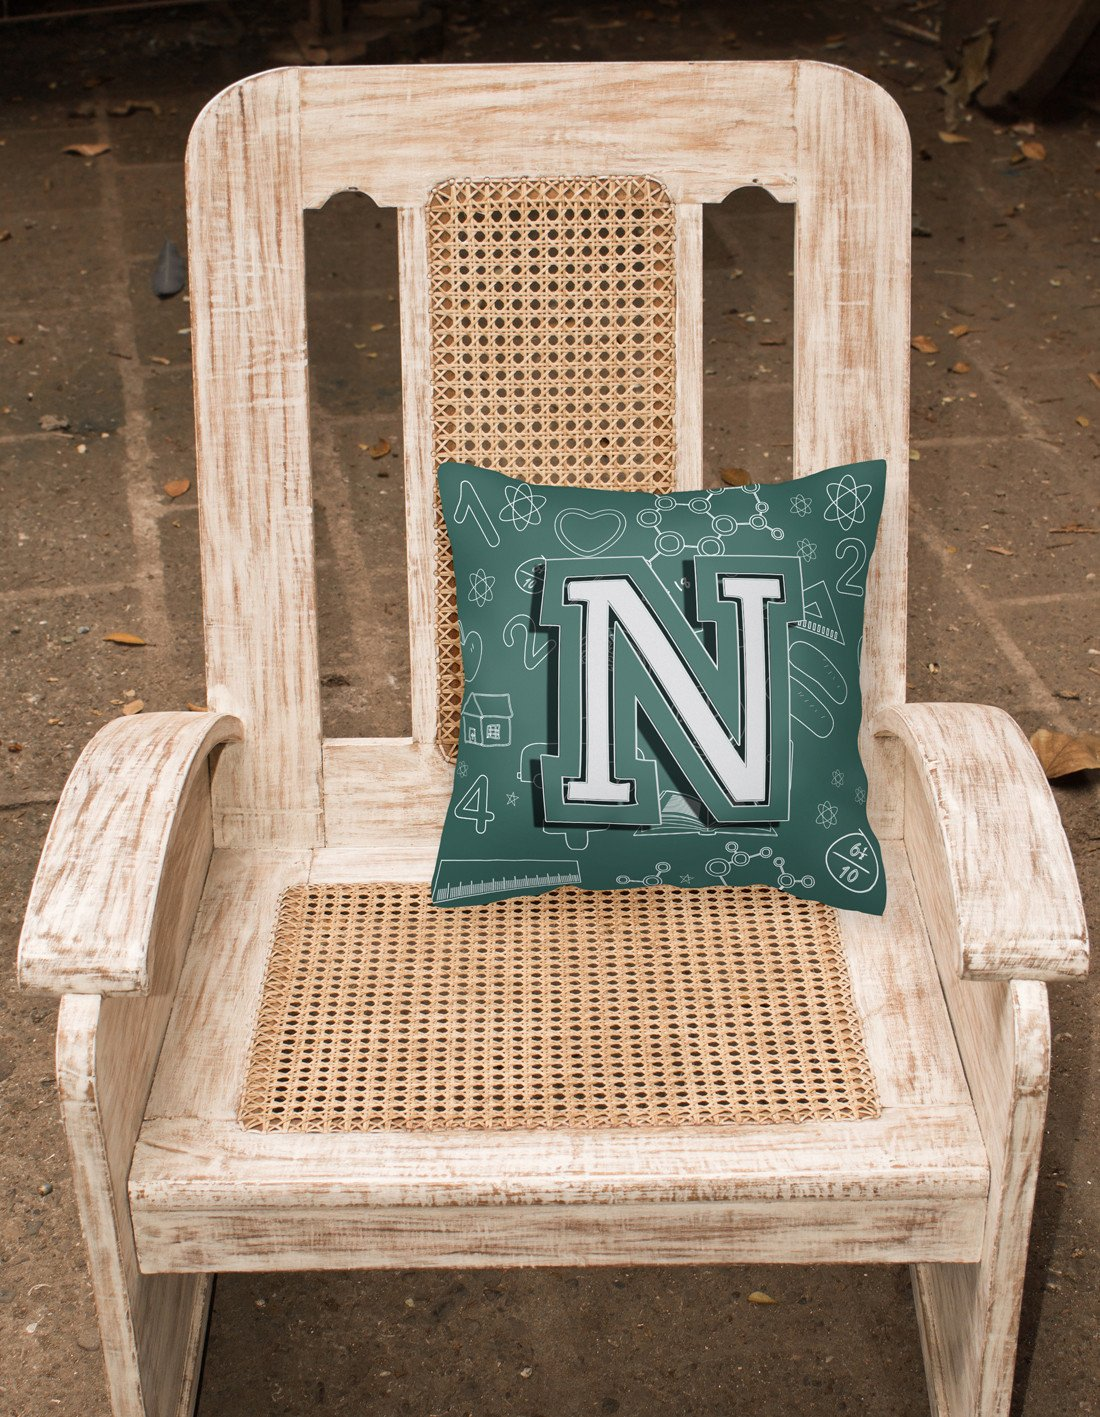 Letter N Back to School Initial Canvas Fabric Decorative Pillow CJ2010-NPW1414 by Caroline's Treasures